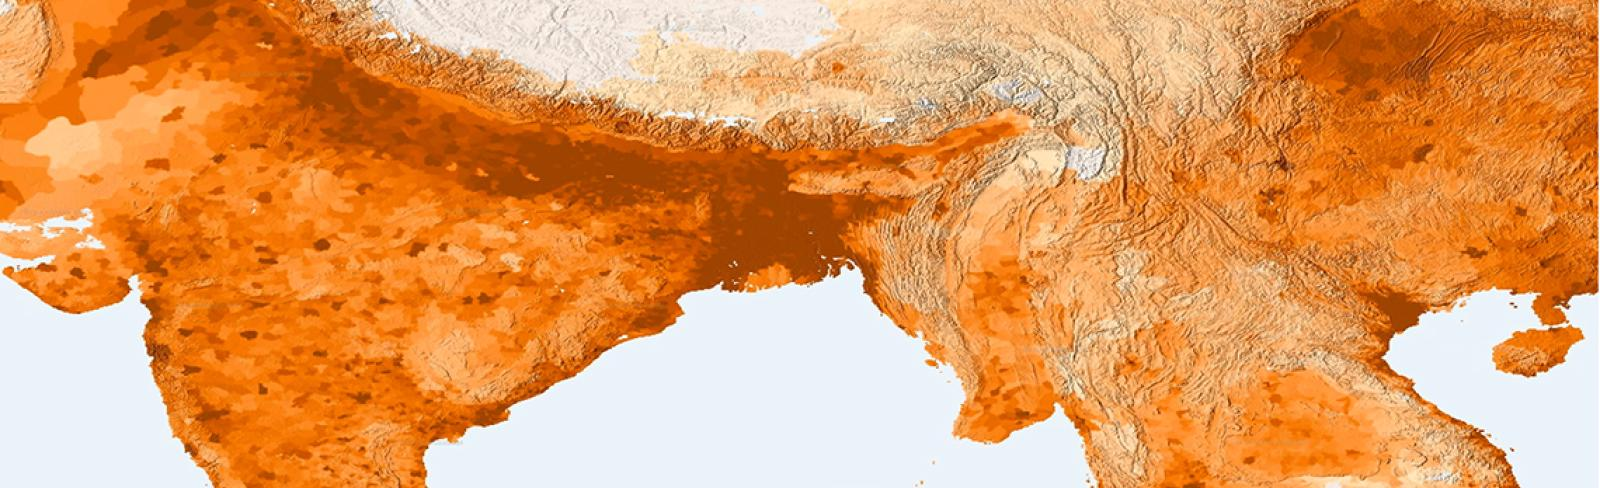 ESMAP Releases New Tool that Maps Solar Potential Globally